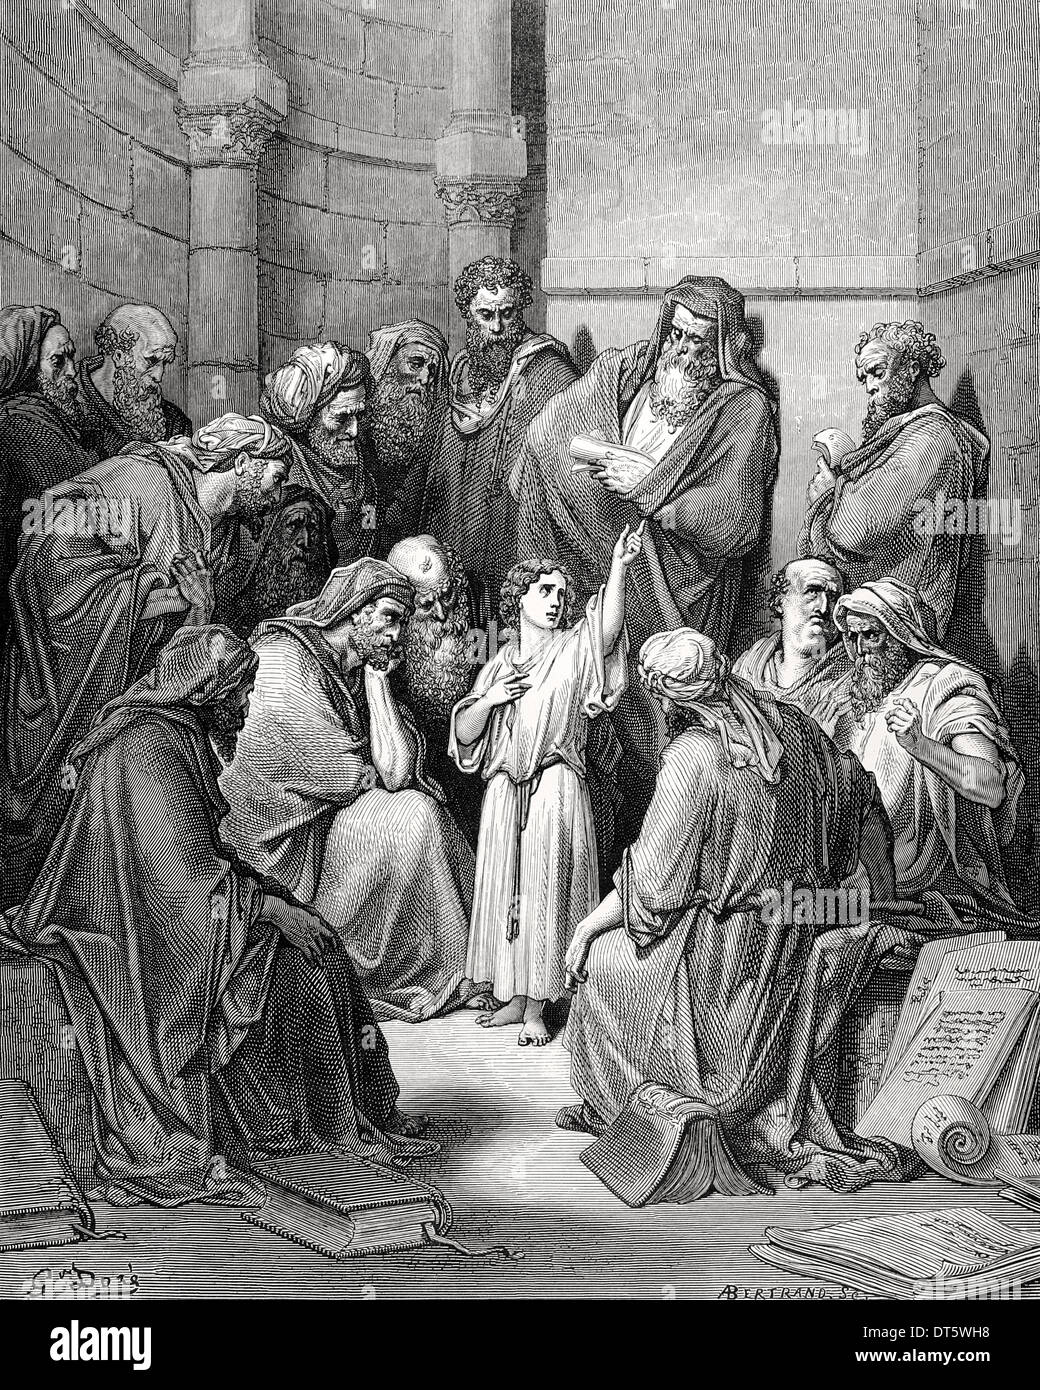 New Testament. Jesus in his childhood among the Doctors. Gospel of Luke, Chapter II, Verses 43-50. Gustave Dore drawing. - Stock Image